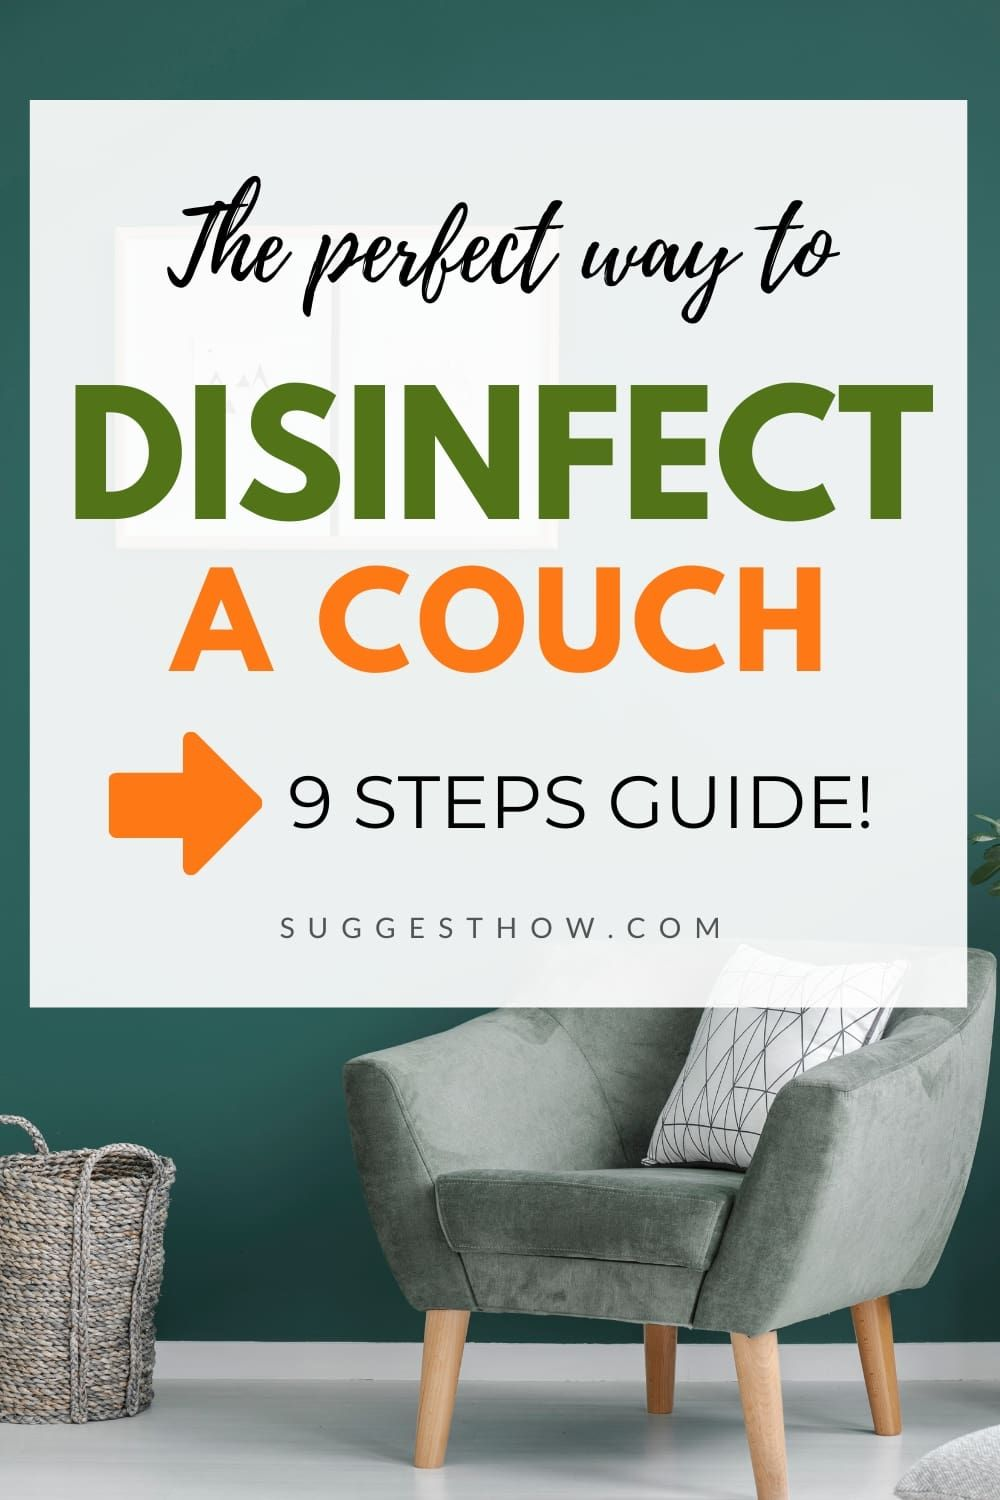 How to Disinfect a Couch Follow 9 Steps Properly in 2020